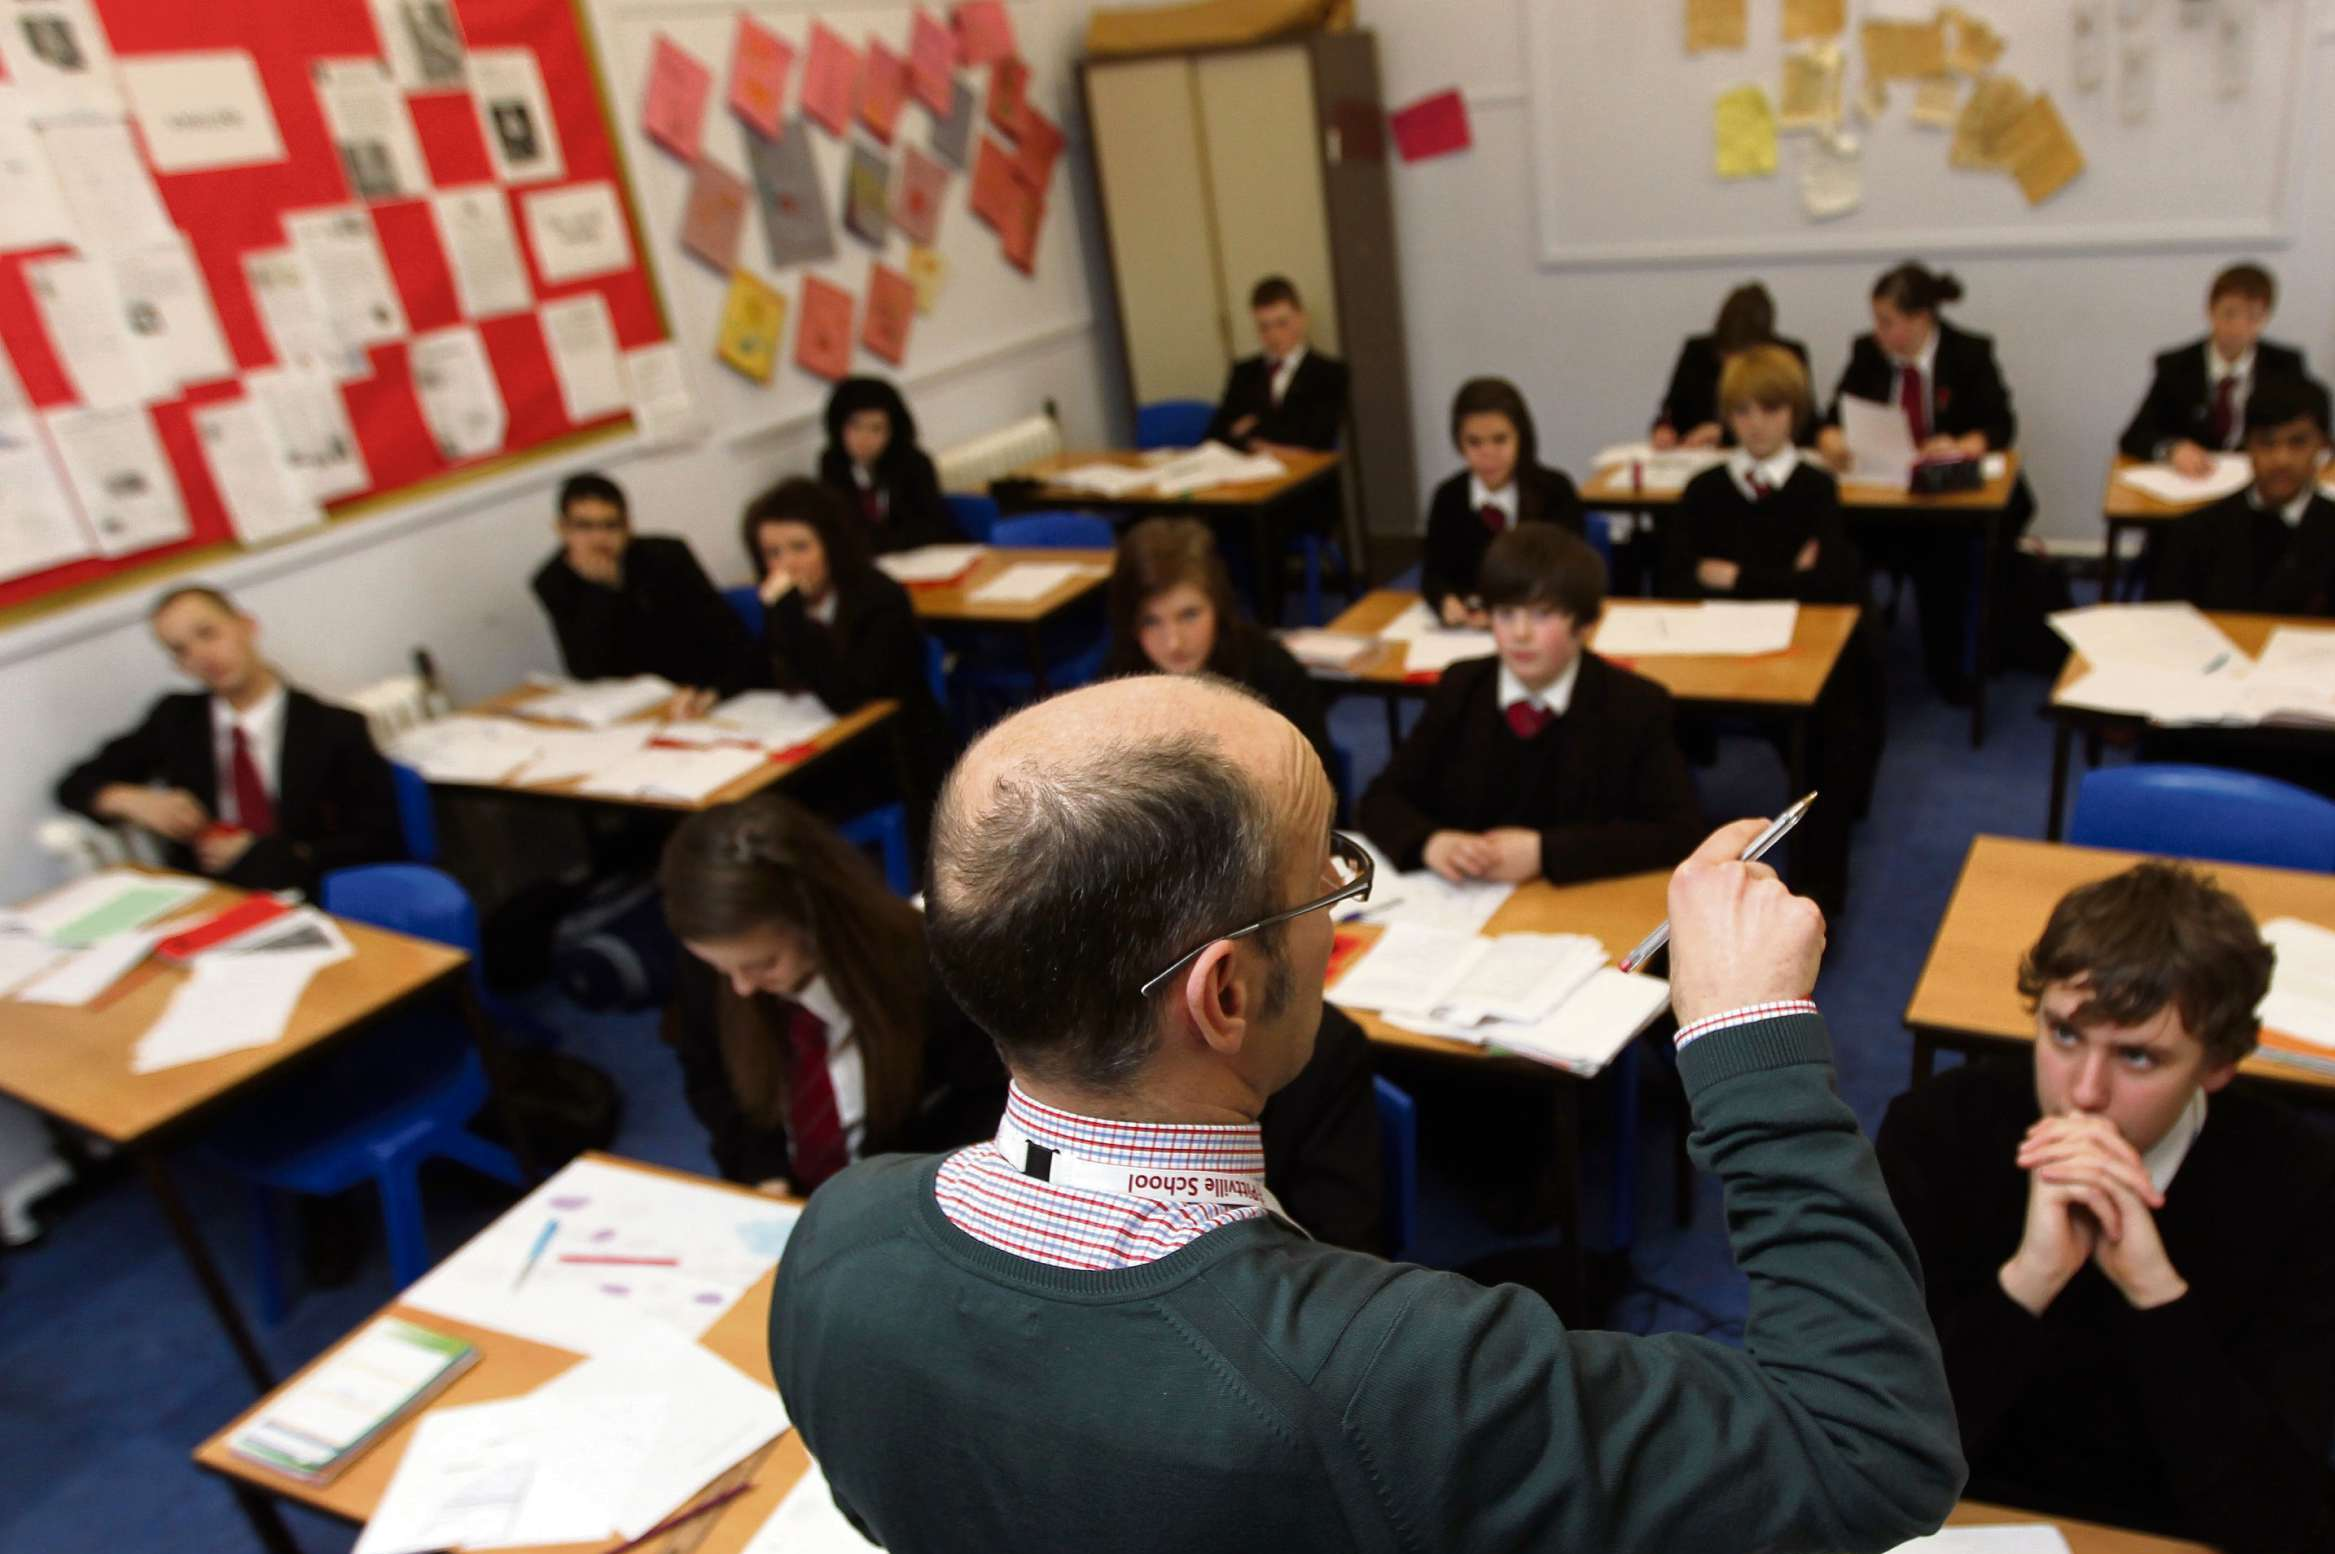 A new Ofsted report highlights the fact that more than 130 schools have failed to make significant progress in over a decade